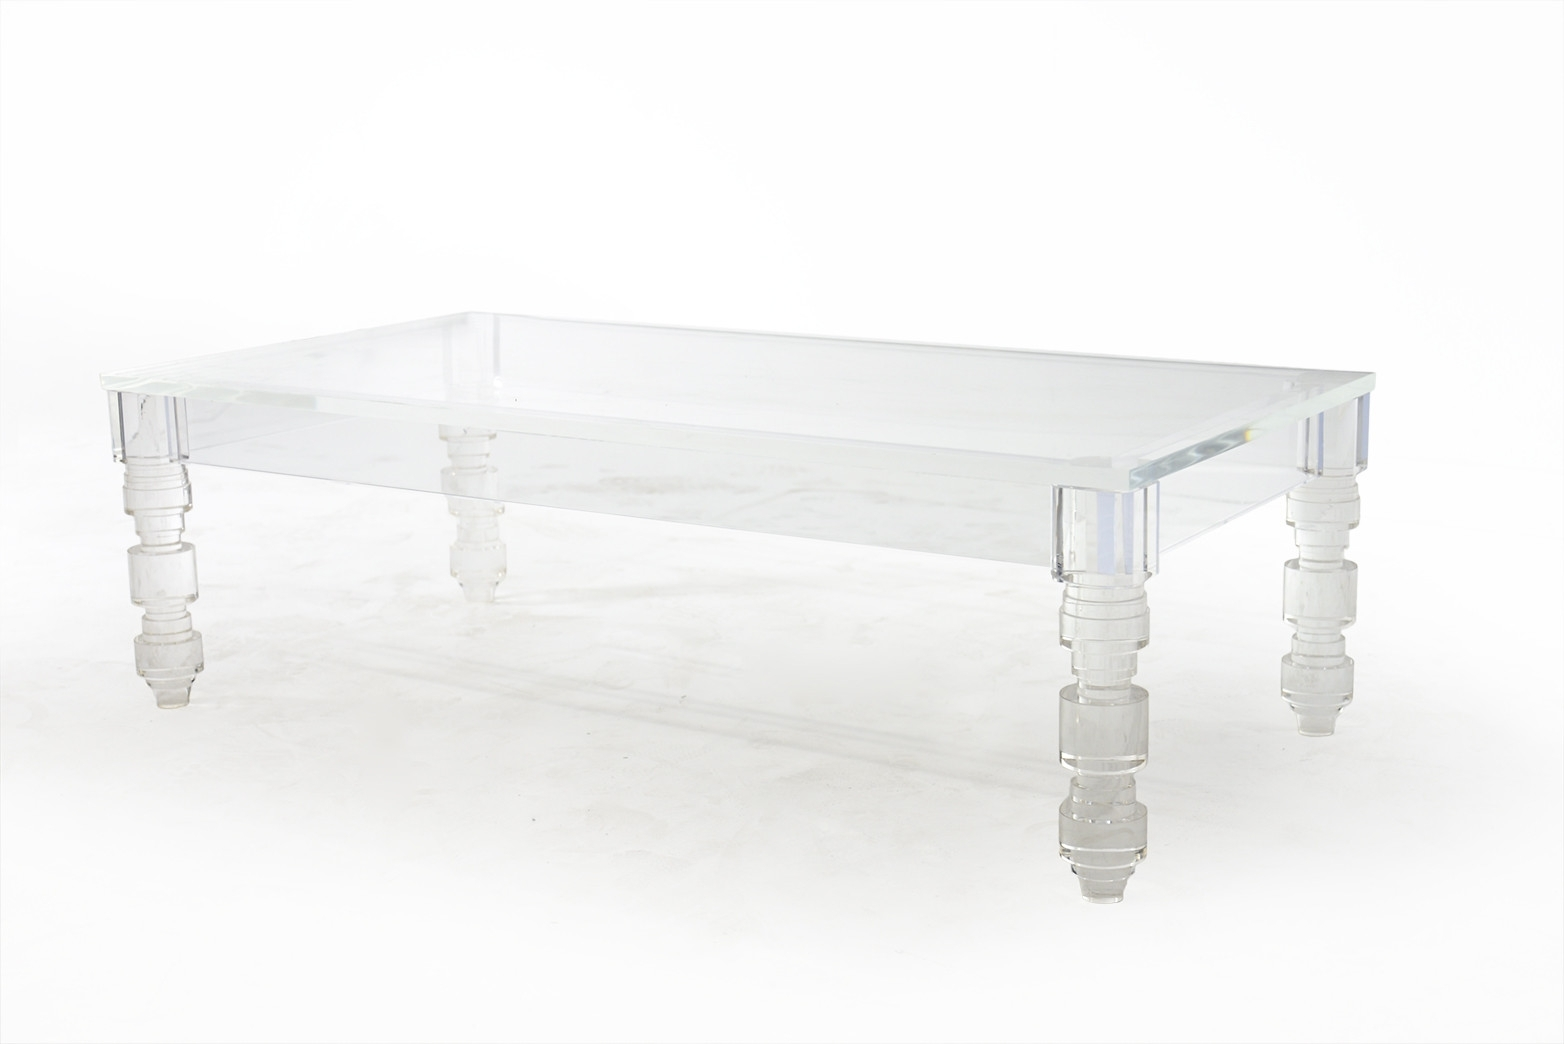 Artistic Acrylic Coffee Table Of For Prices #47526 | Forazhouse regarding Peekaboo Acrylic Coffee Tables (Image 9 of 30)